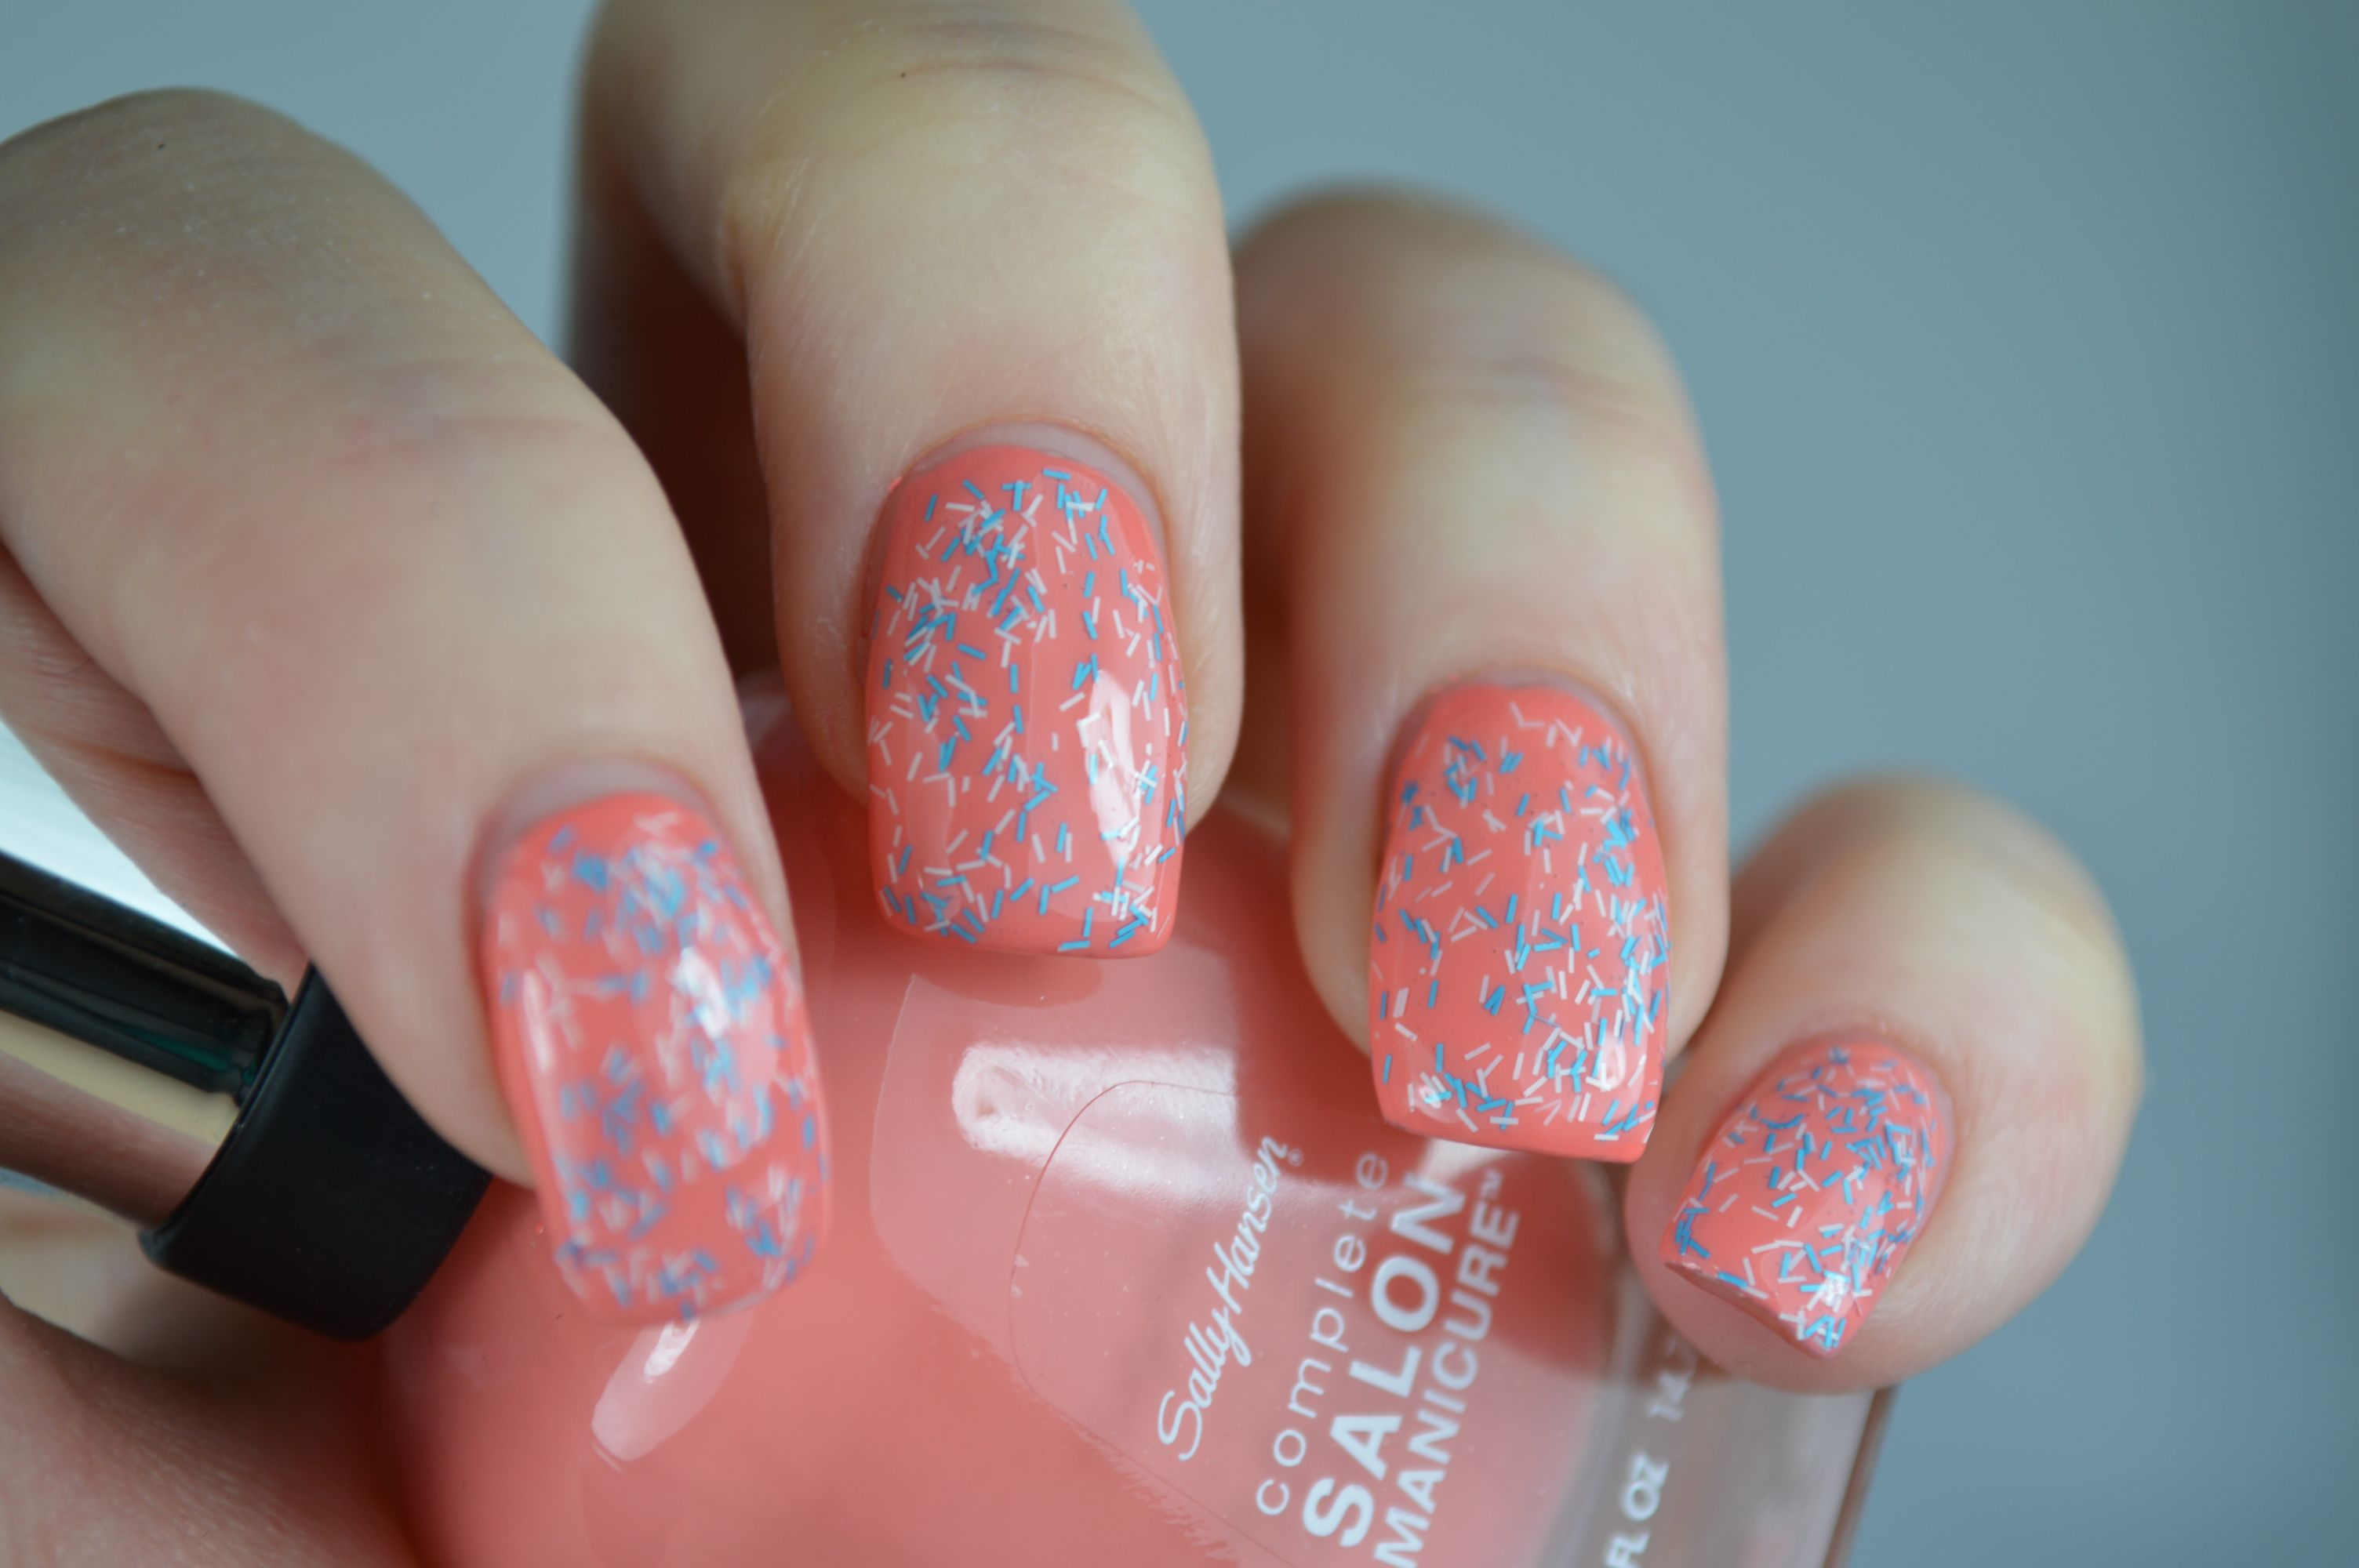 Wool Knot Sally Hansen Fuzzy Coat Peach of Cake Swatches Nagellack Review